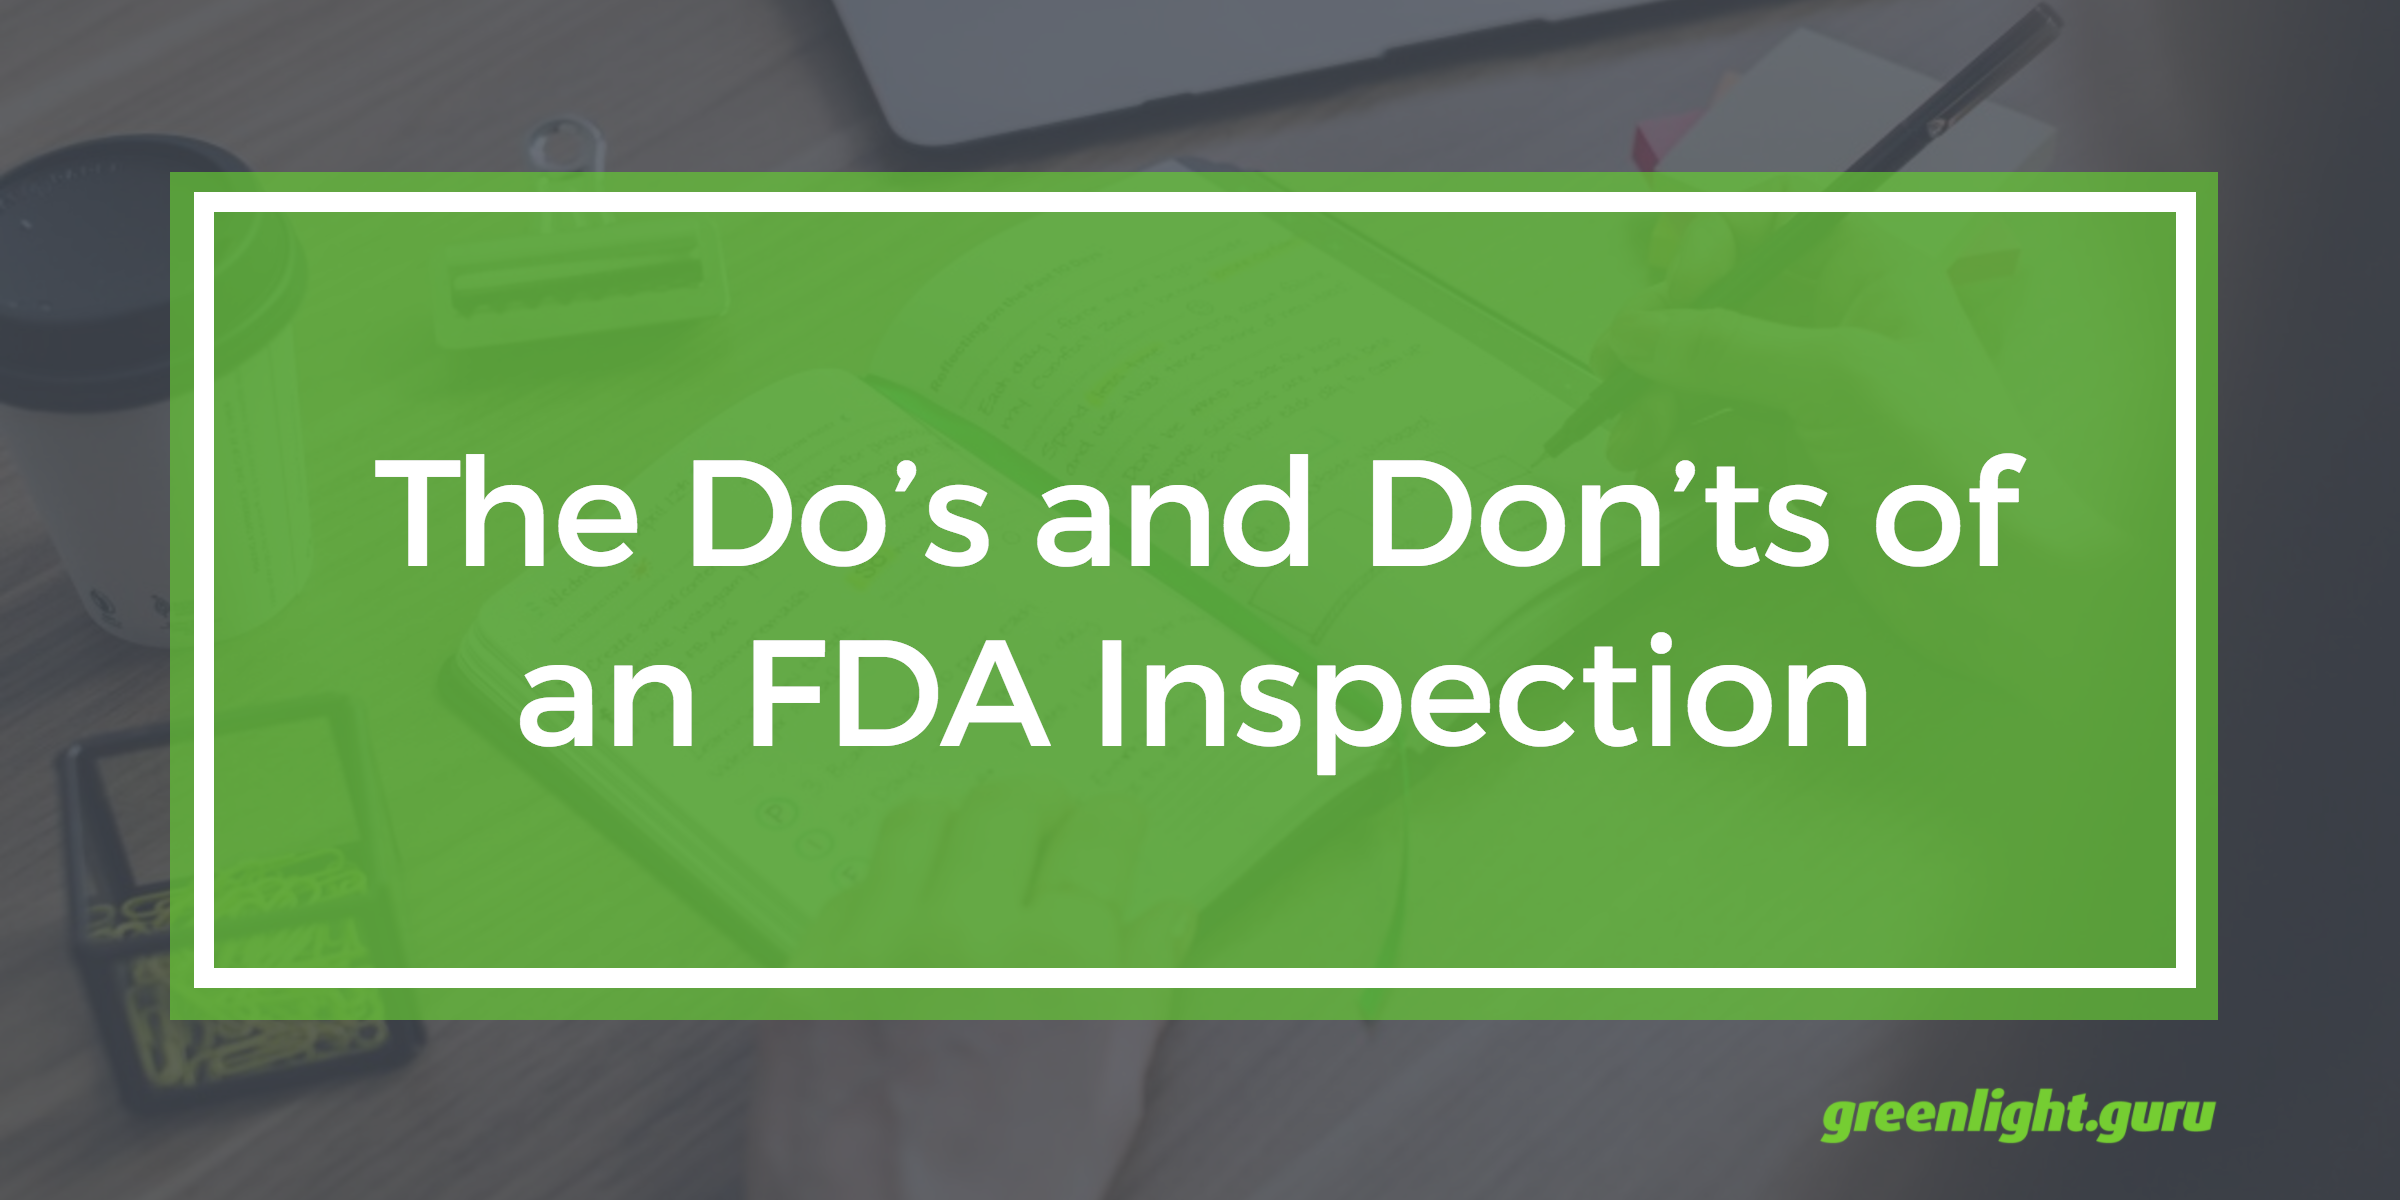 fda_inspection.png